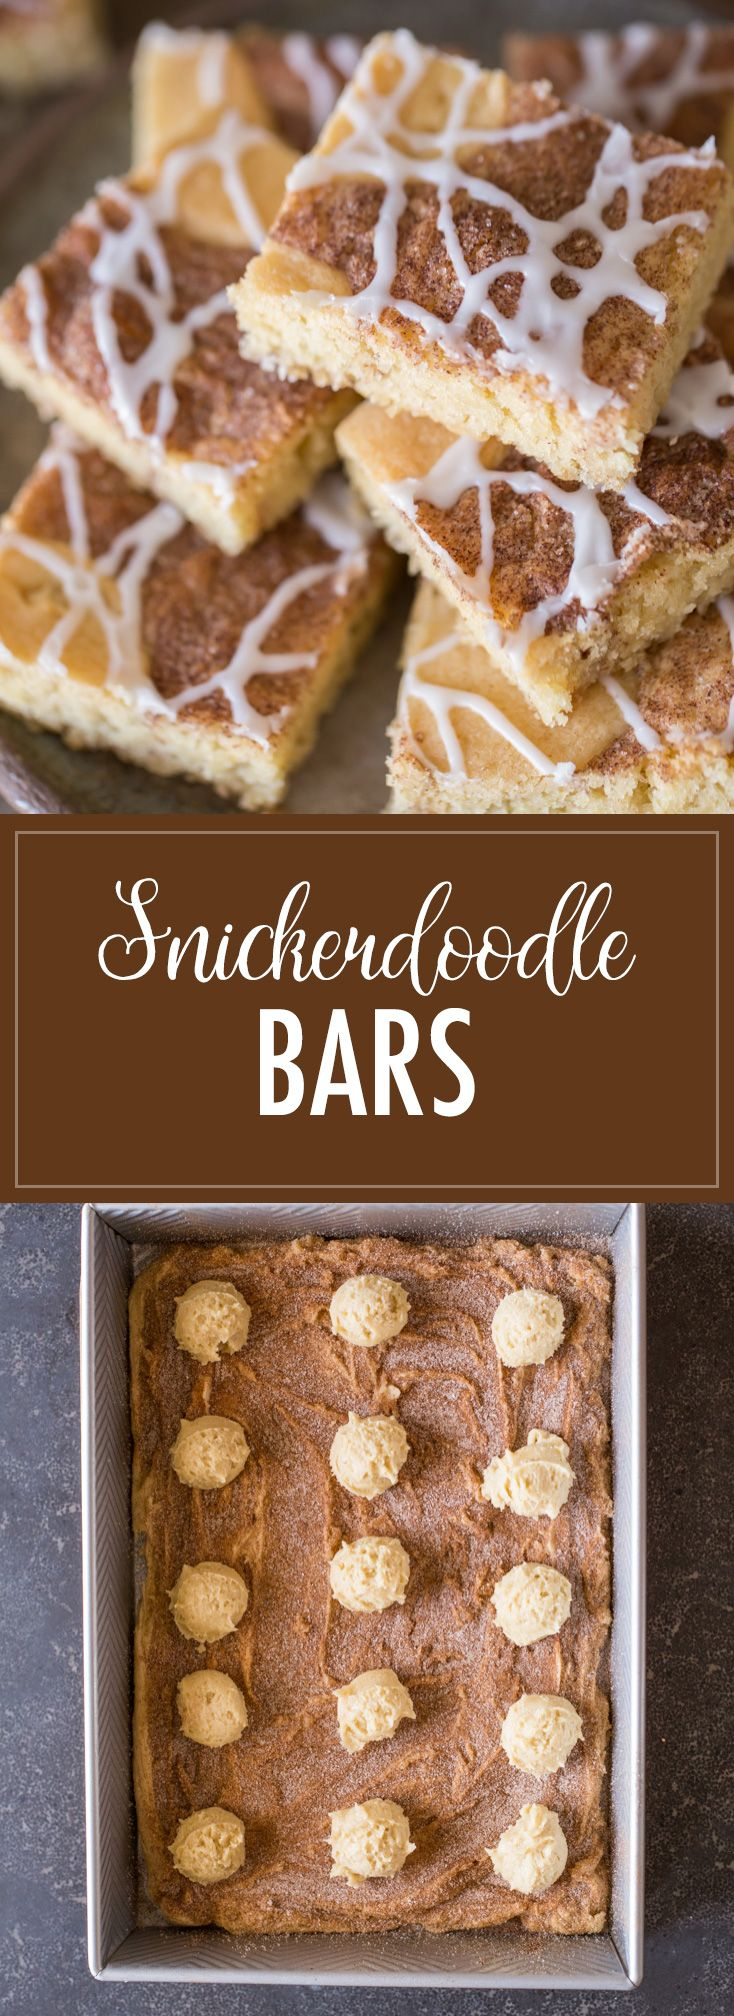 These Snickerdoodle Bars taste just like the classic cookies we all love, but come together much more quickly and are topped with a delicious vanilla glaze!